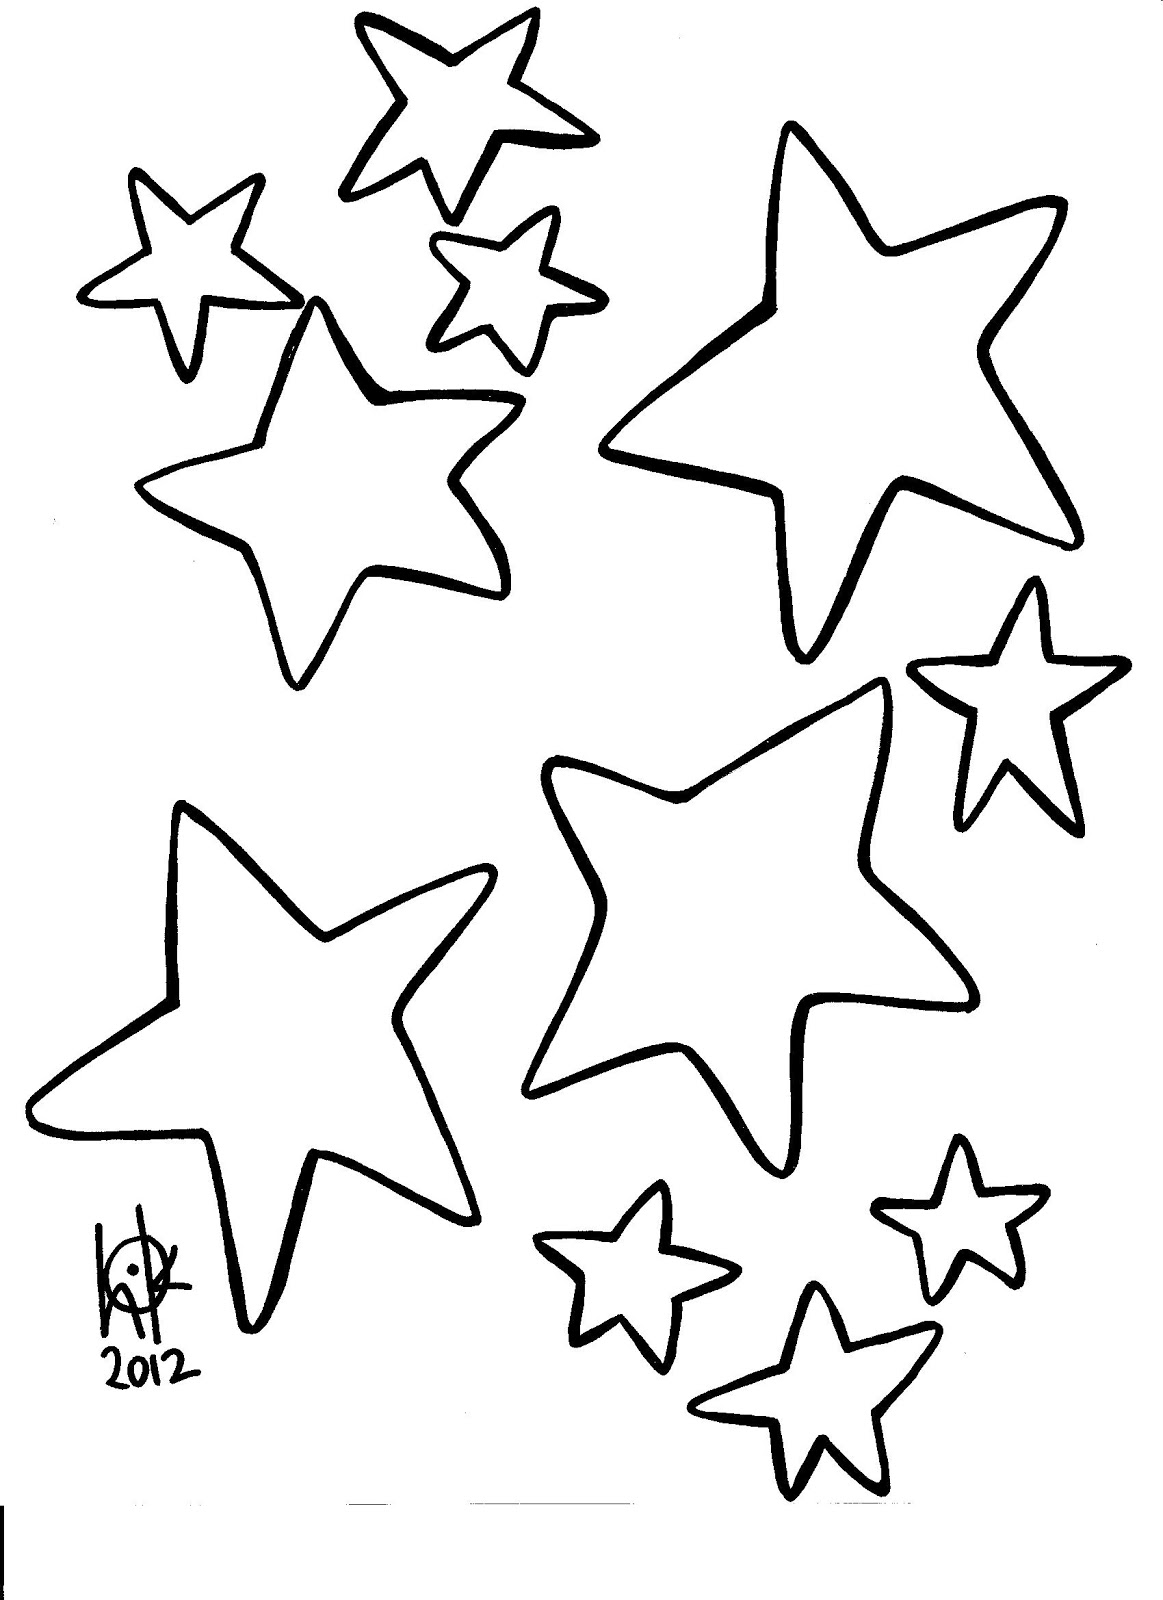 colouring pages of stars free printable star coloring pages for kids of pages stars colouring